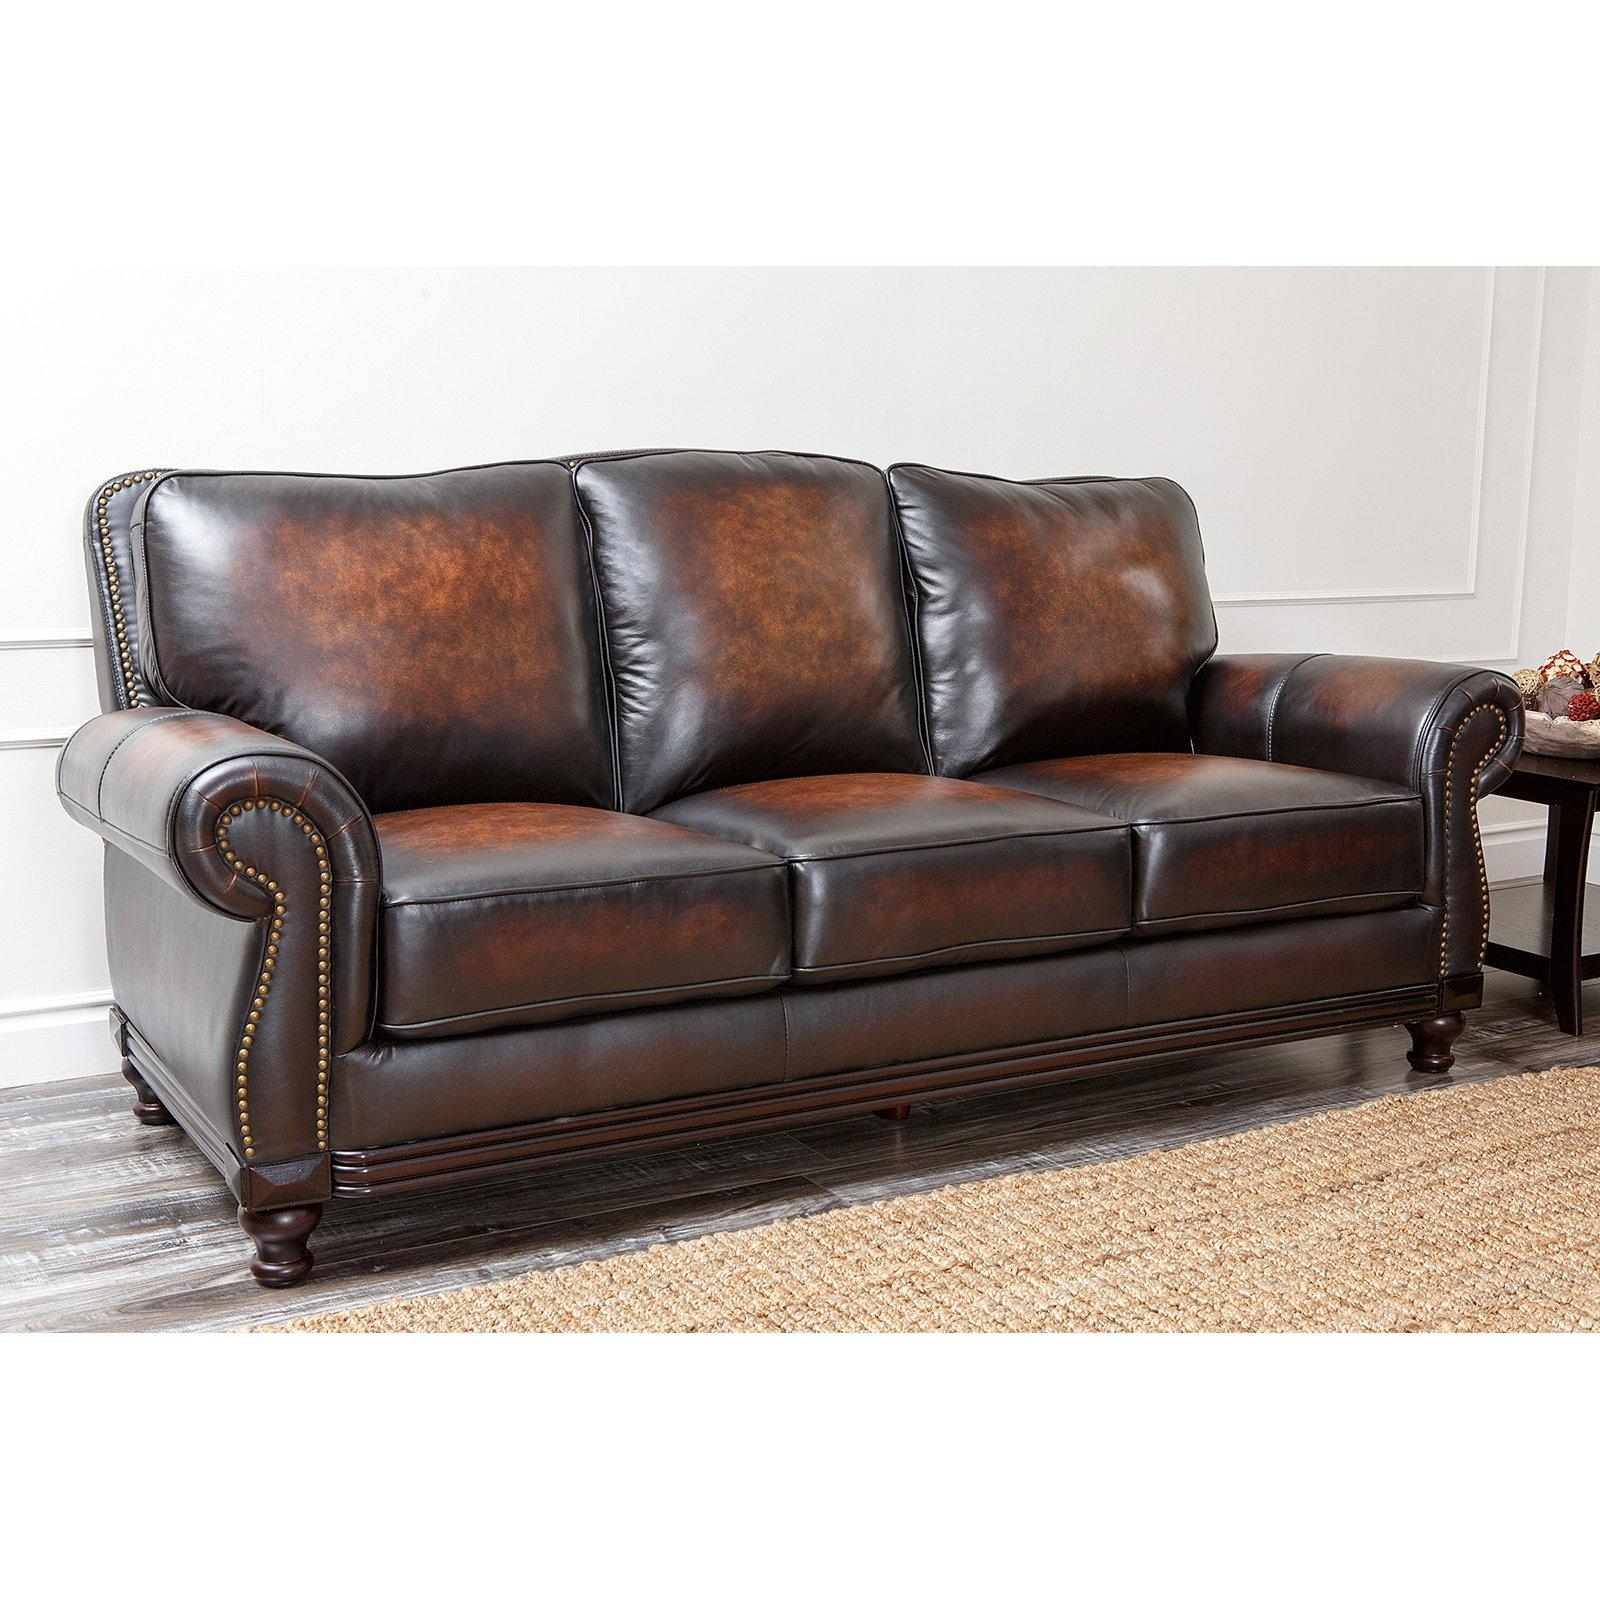 Abbyson Barclay 4 Piece Hand Rubbed Leather Sofa Set – Brown In Abbyson Sofas (Image 1 of 20)